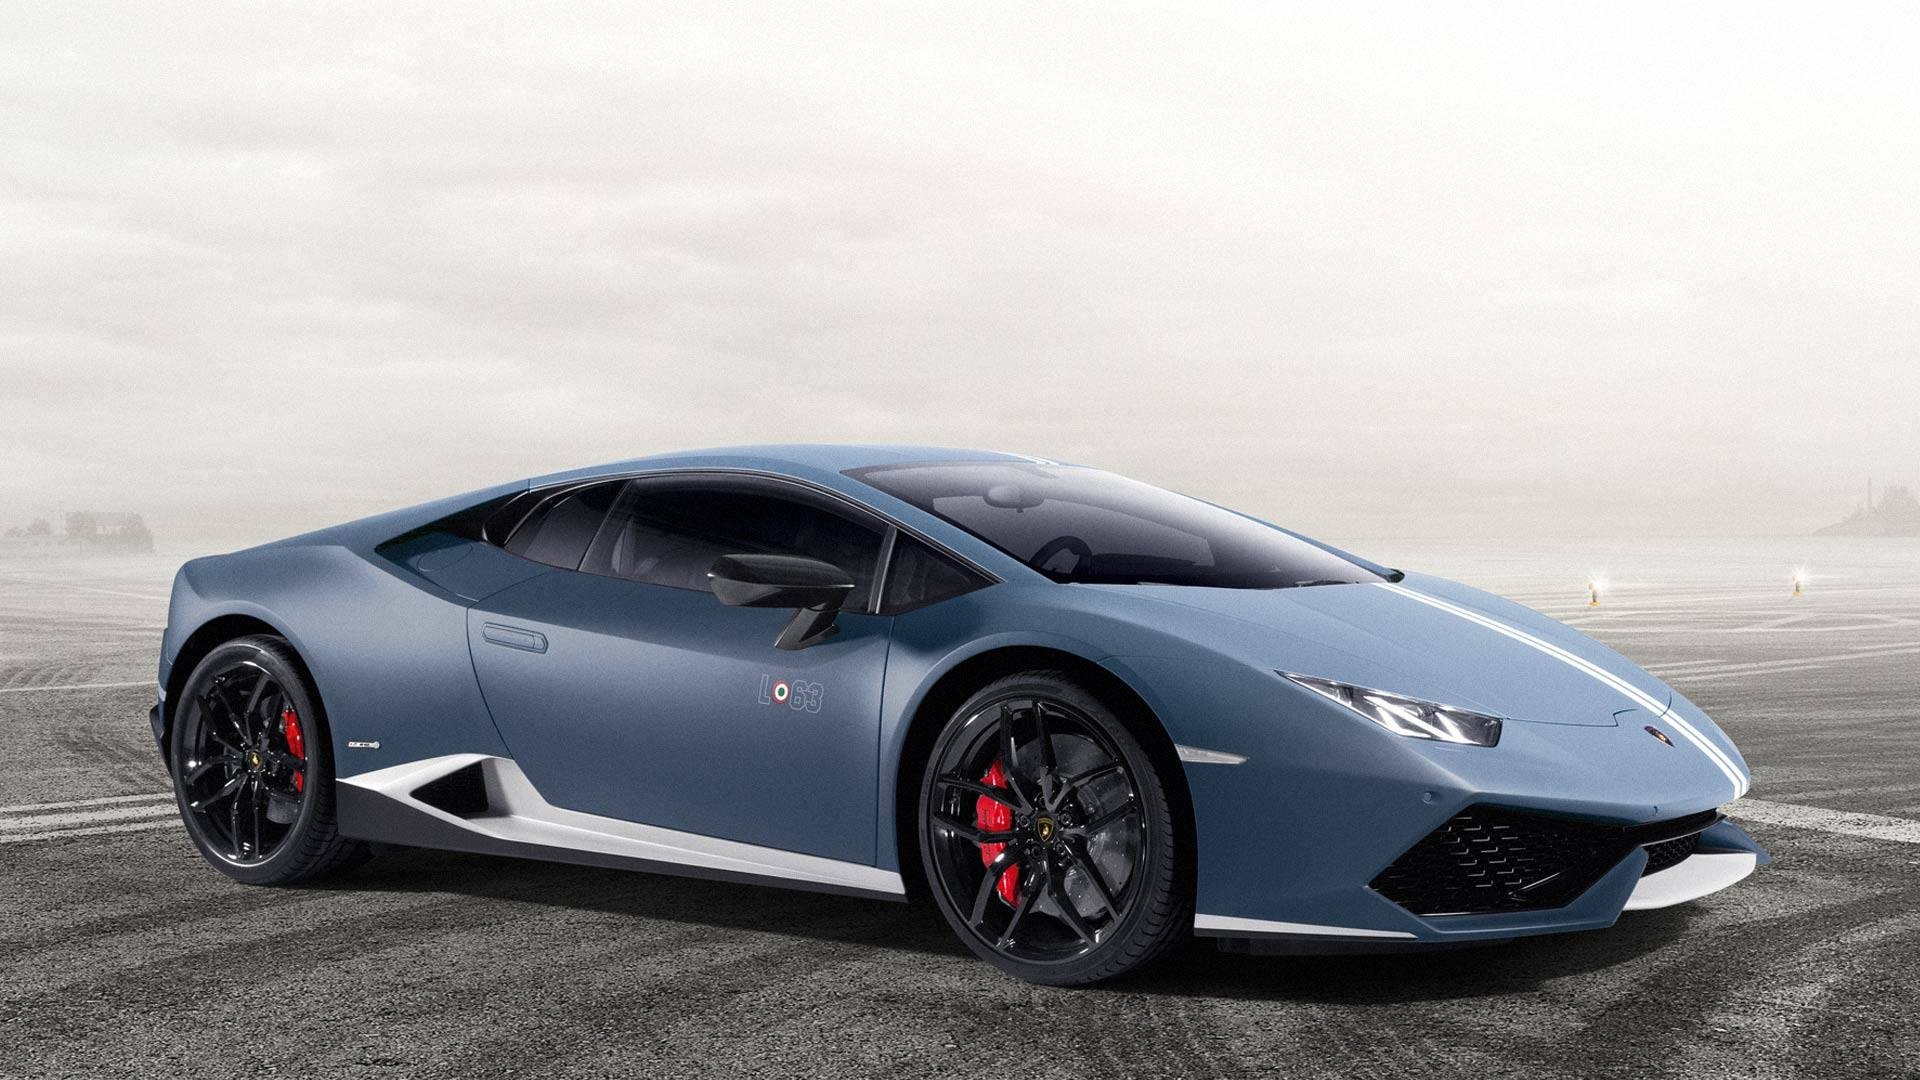 lamborghini huracan wallpaper for windows - Lamborghini Huracan Wallpaper